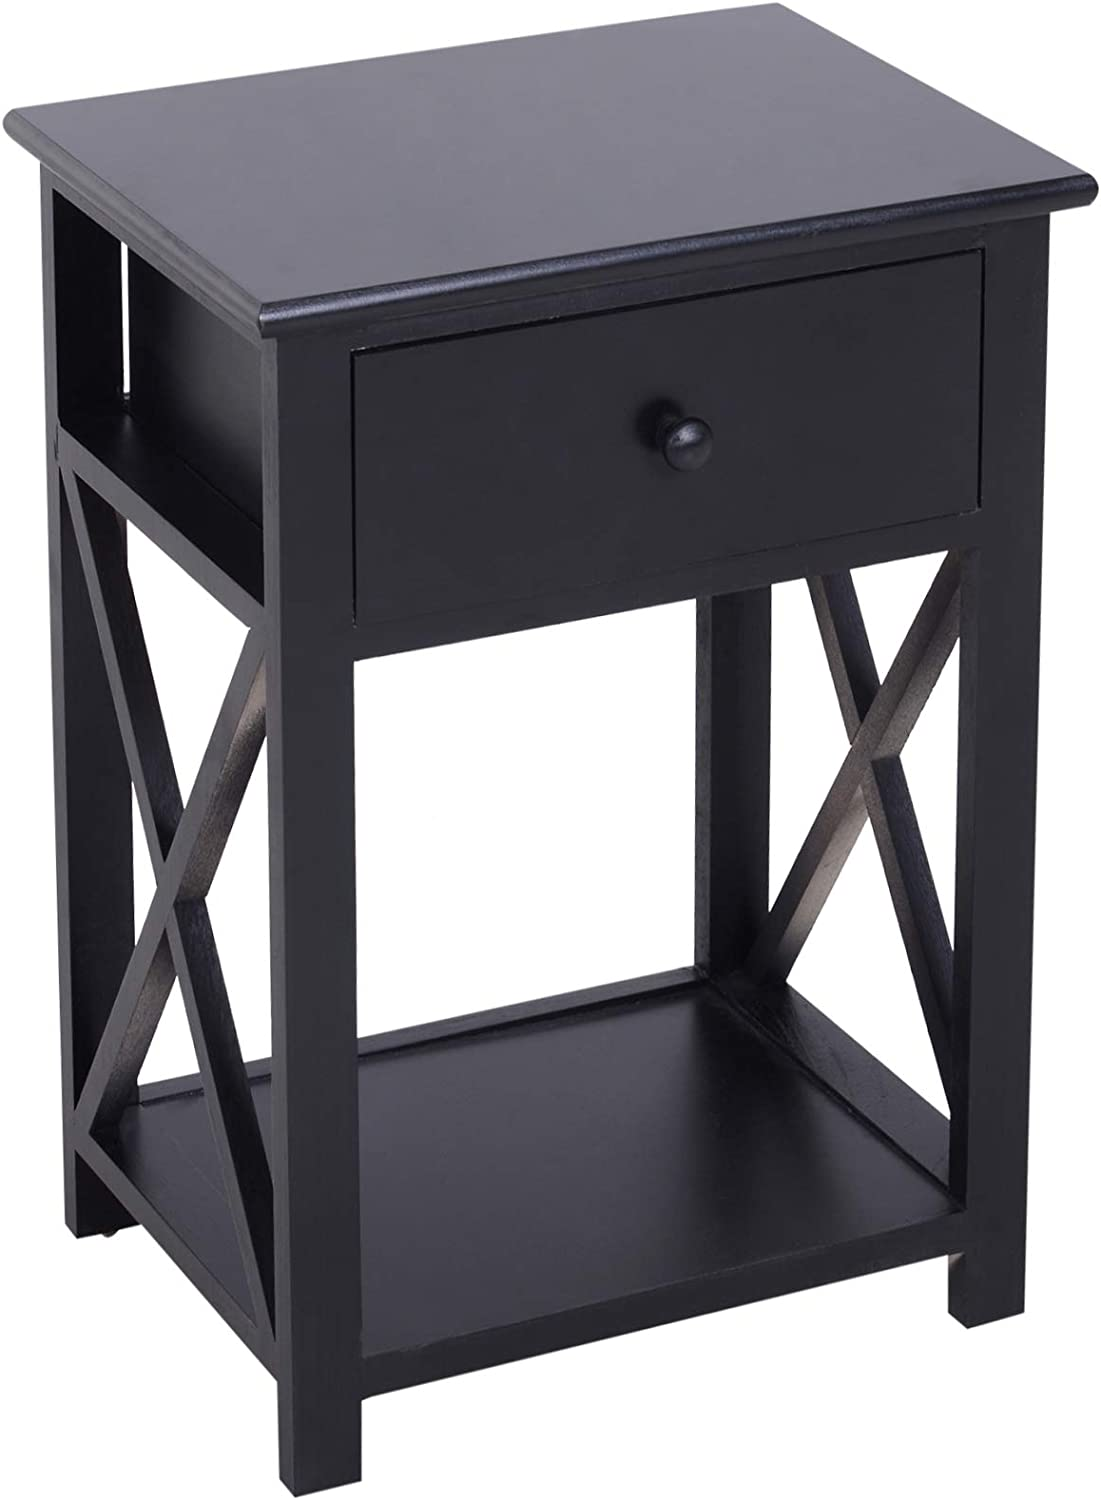 HOMCOM X Frame Design Wood End Table Nightstand with Storage Drawer Black